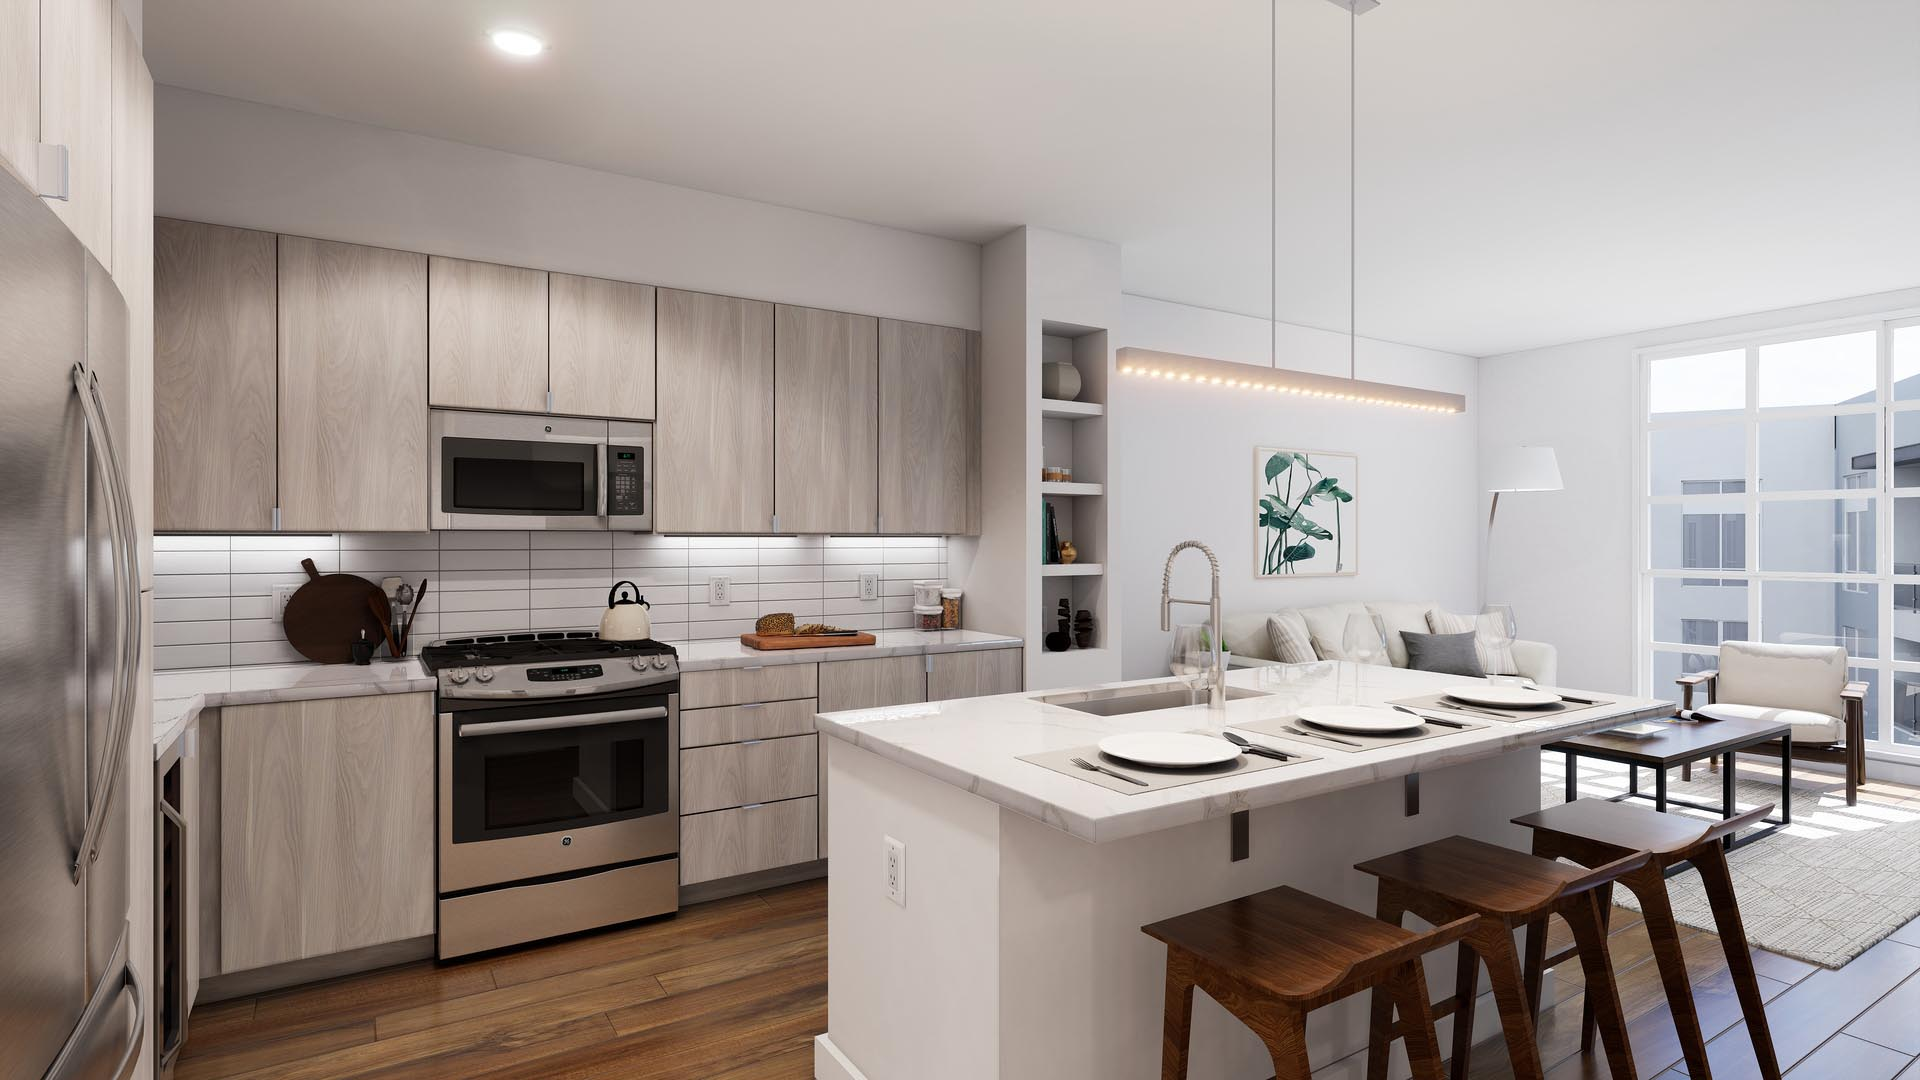 An apartment kitchen with finish option 1